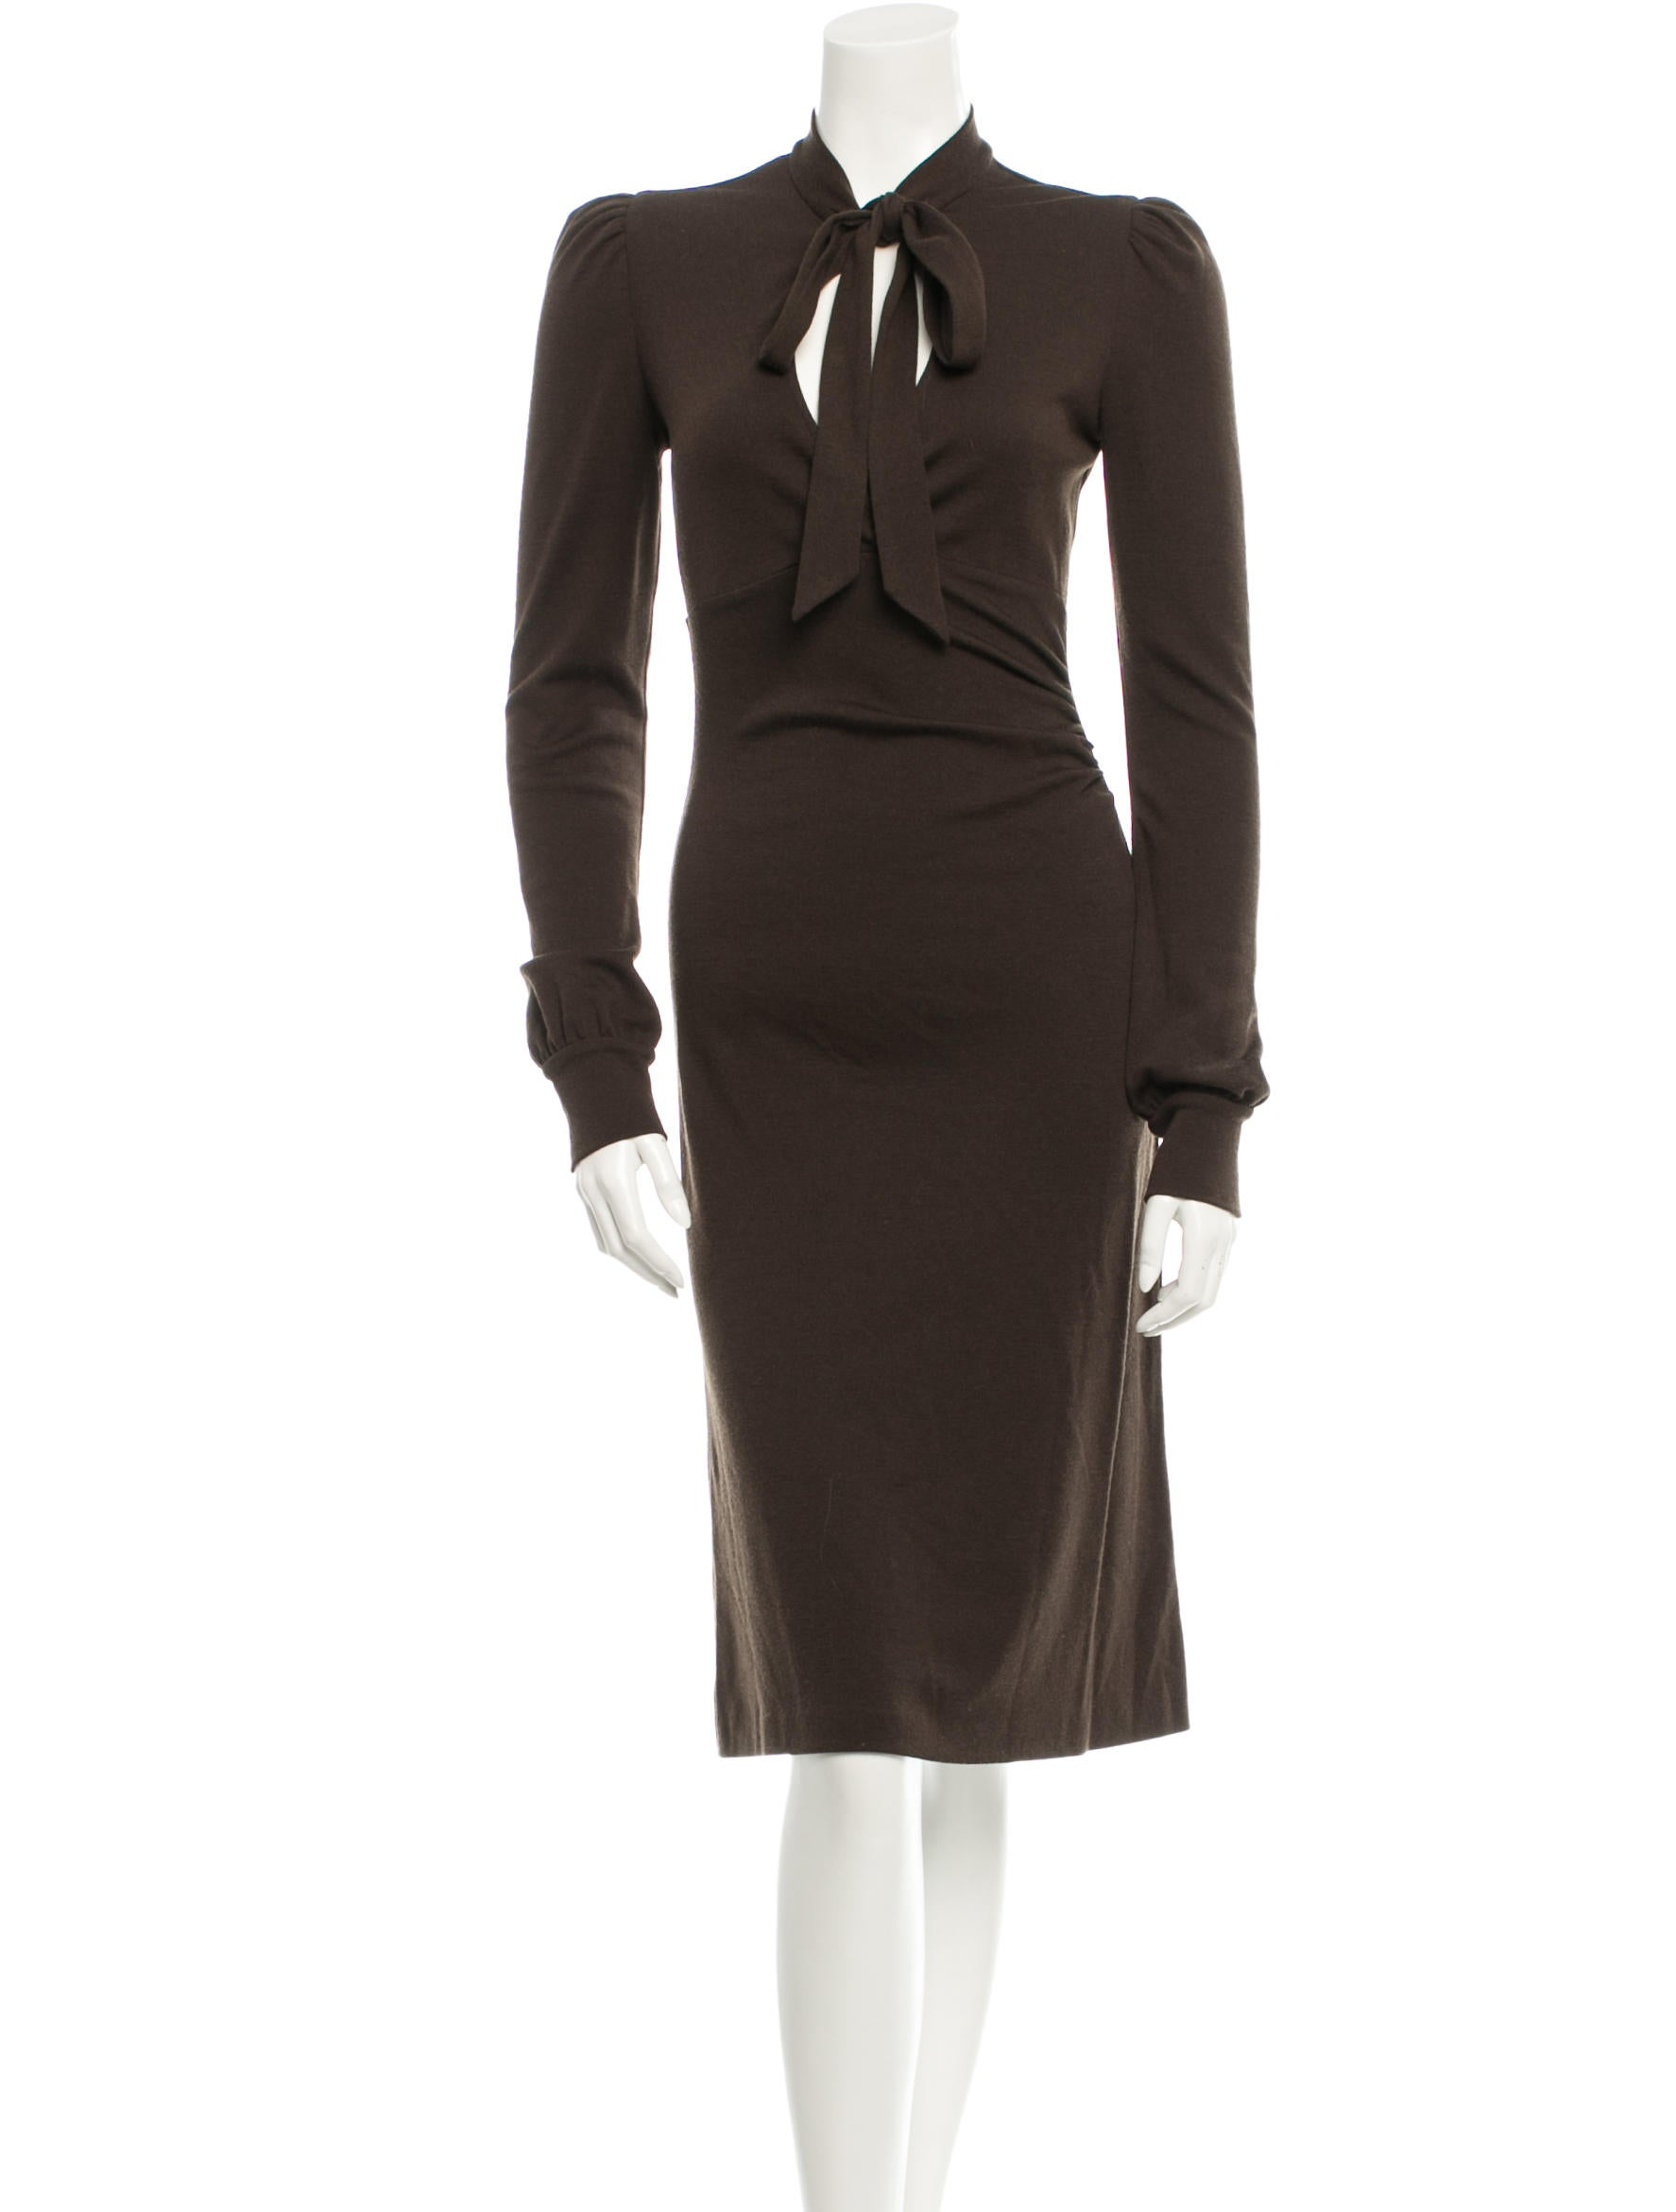 Diane Von Furstenberg Dress Clothing Wdi41549 The